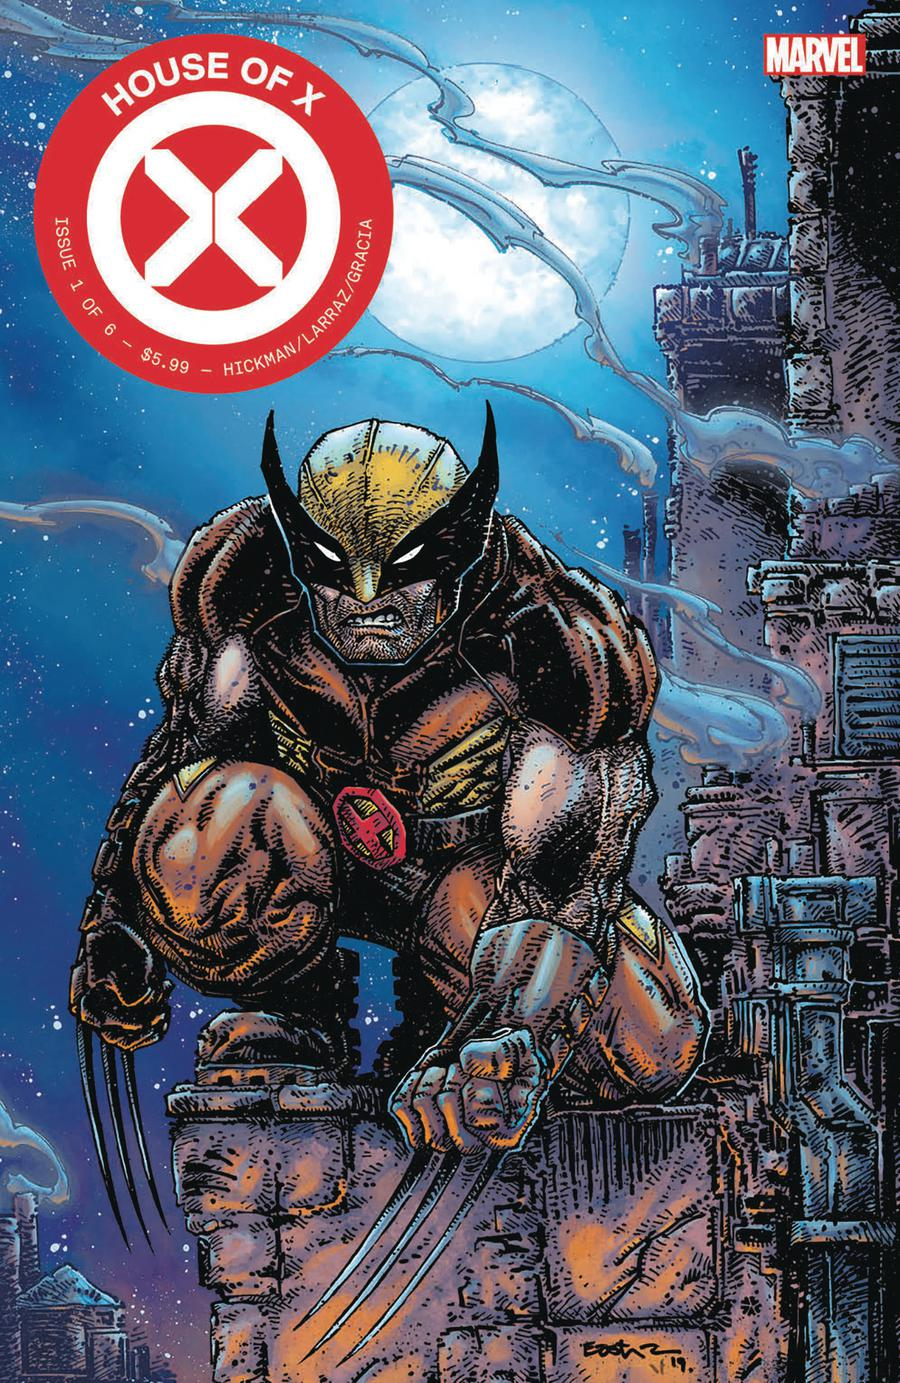 House Of X #1 Cover U Clover Press Exclusive Kevin Eastman Variant Cover